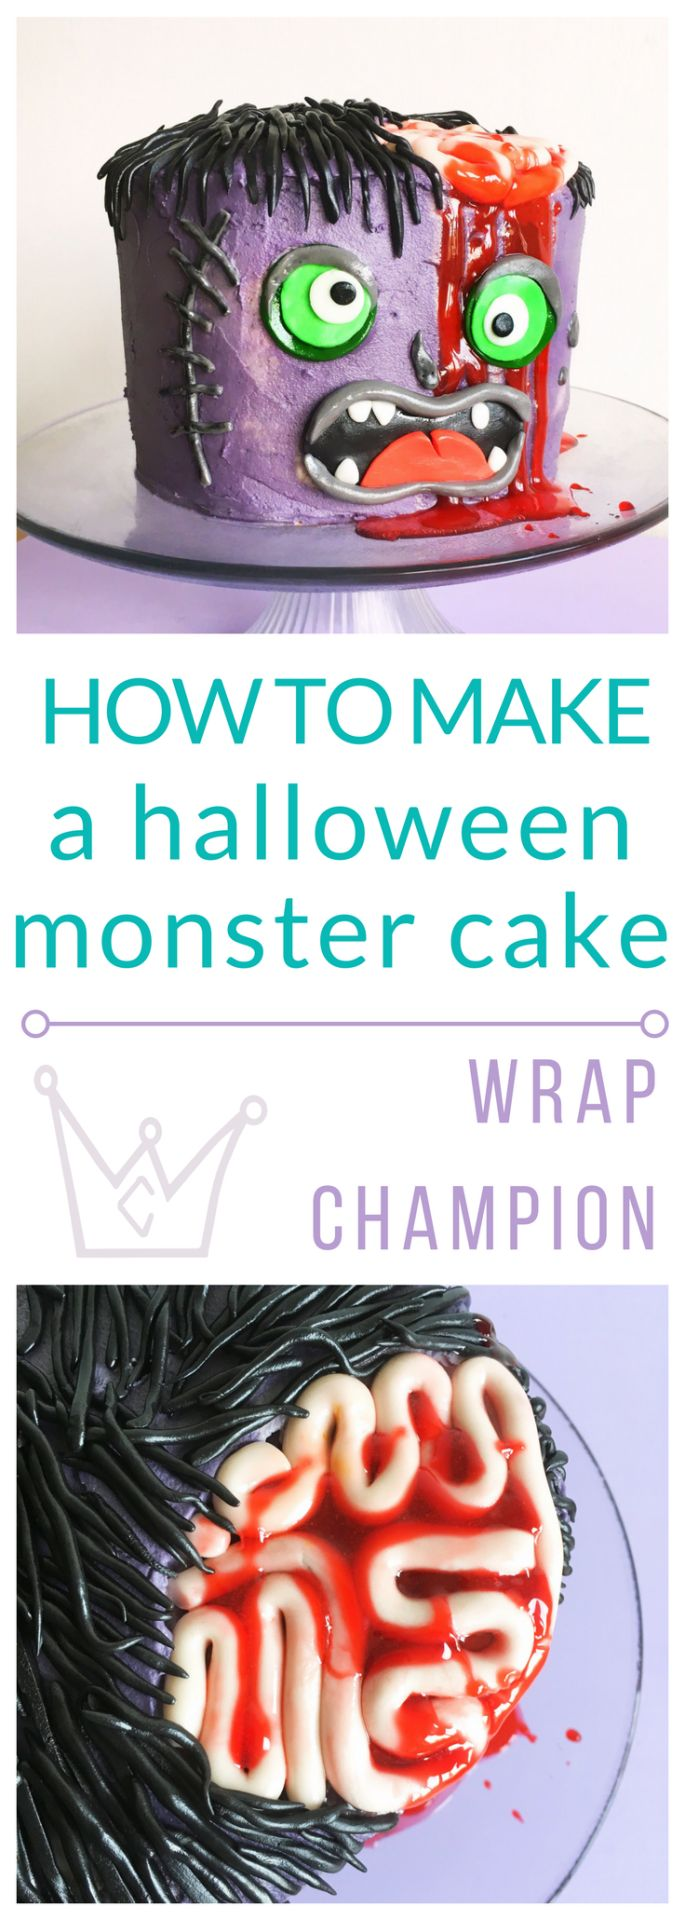 How to make a scary, Halloween, monster cake tutorial with step by step instructions and edible blood